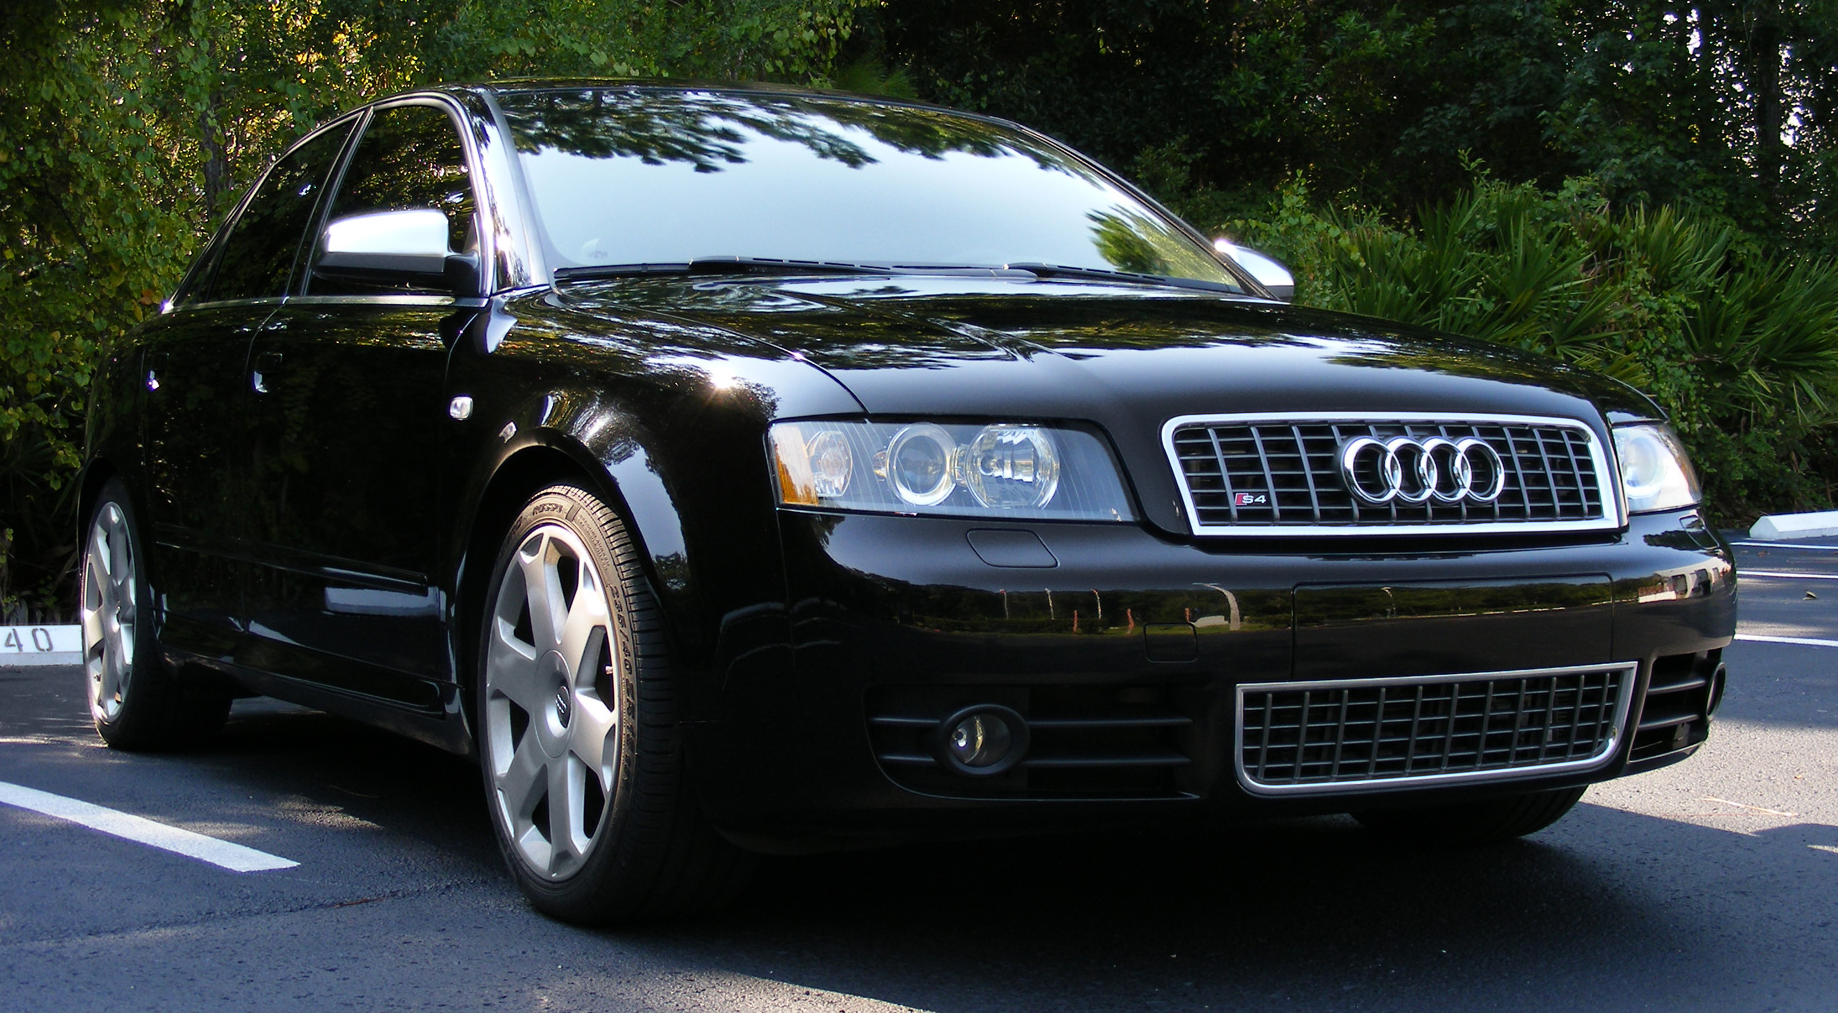 2001 audi a4 quattro body kit 16